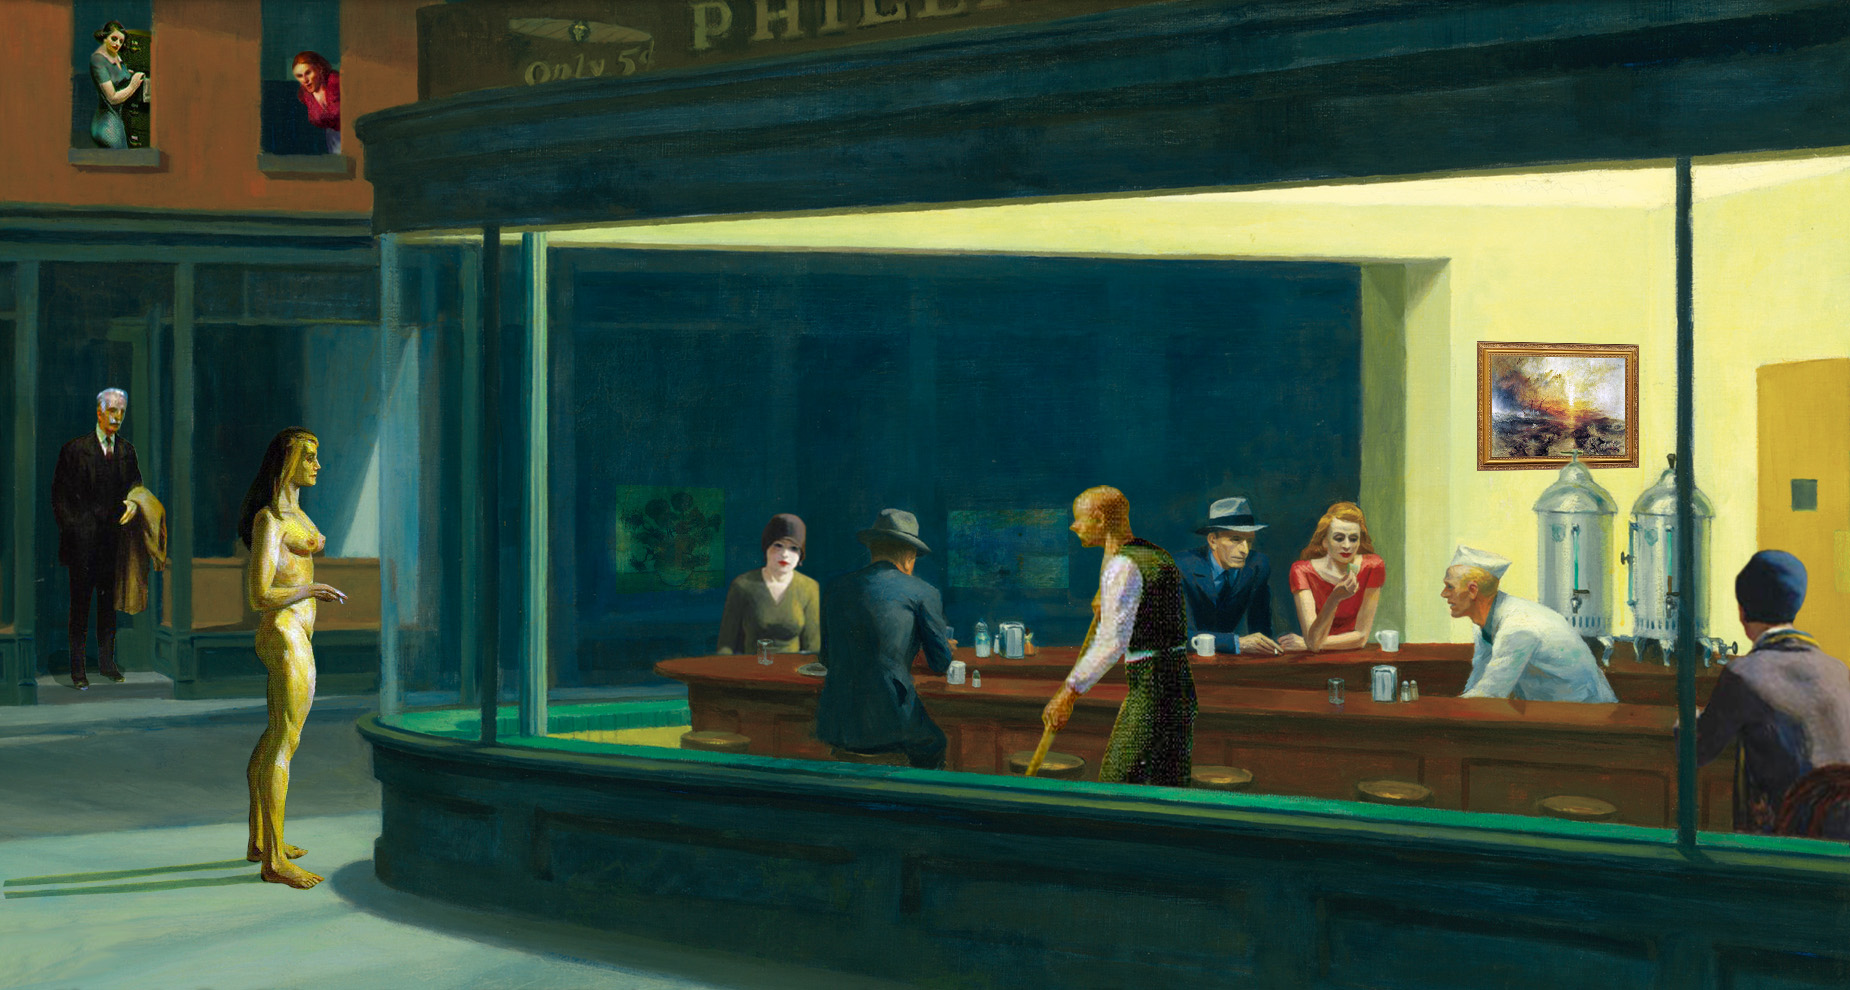 Top Parody Nighthawks At The Wallpapers